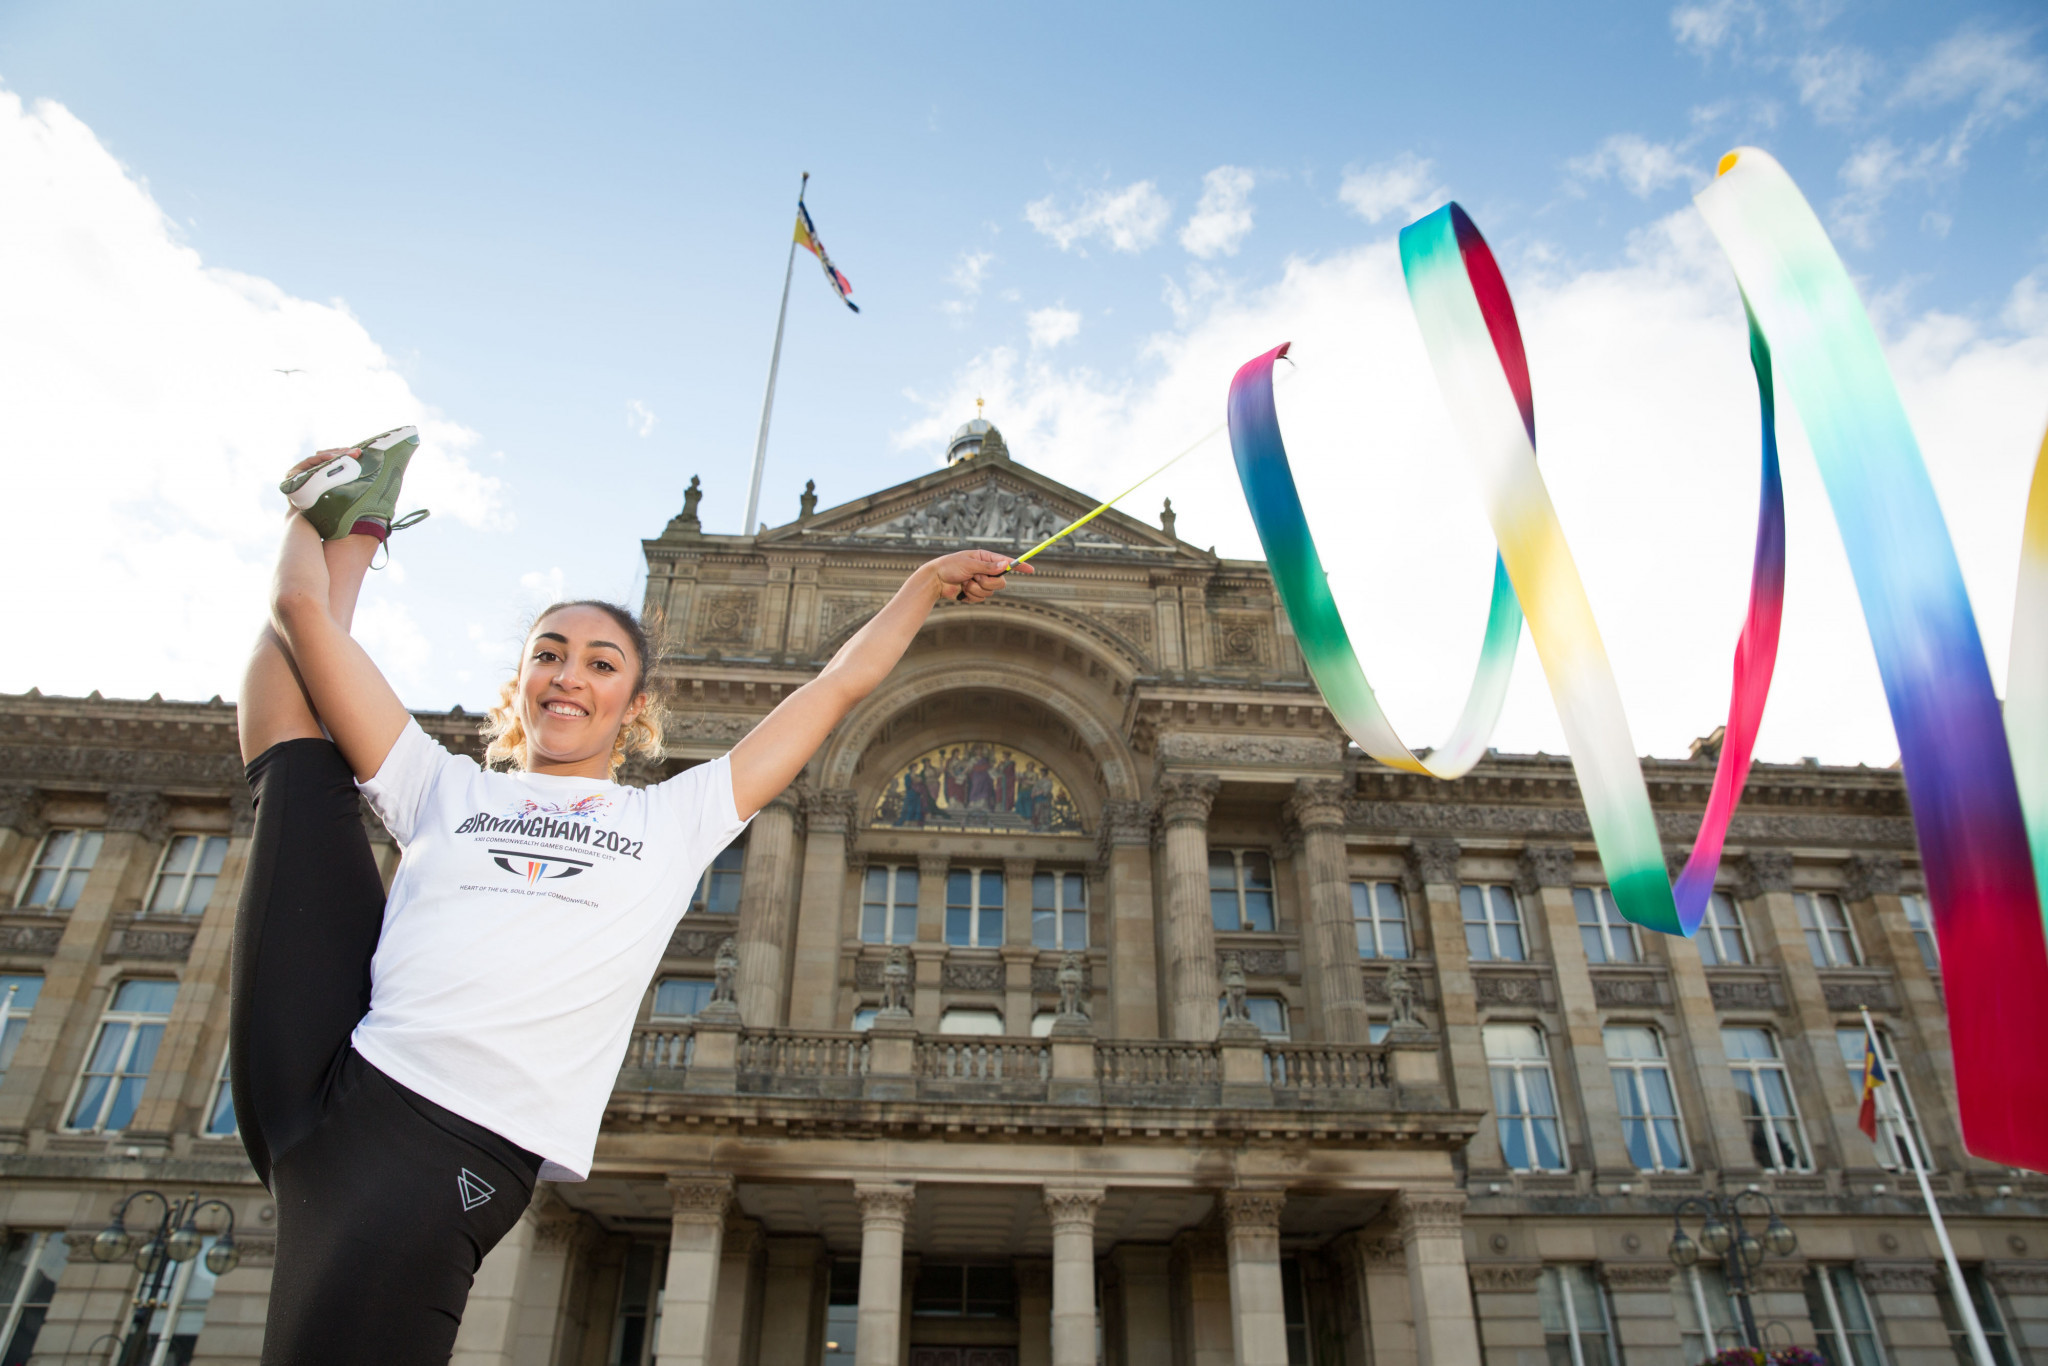 More than 4,500 jobs would be created in the West Midlands if Birmingham is awarded the 2022 Commonwealth Games ©Birmingham 2022